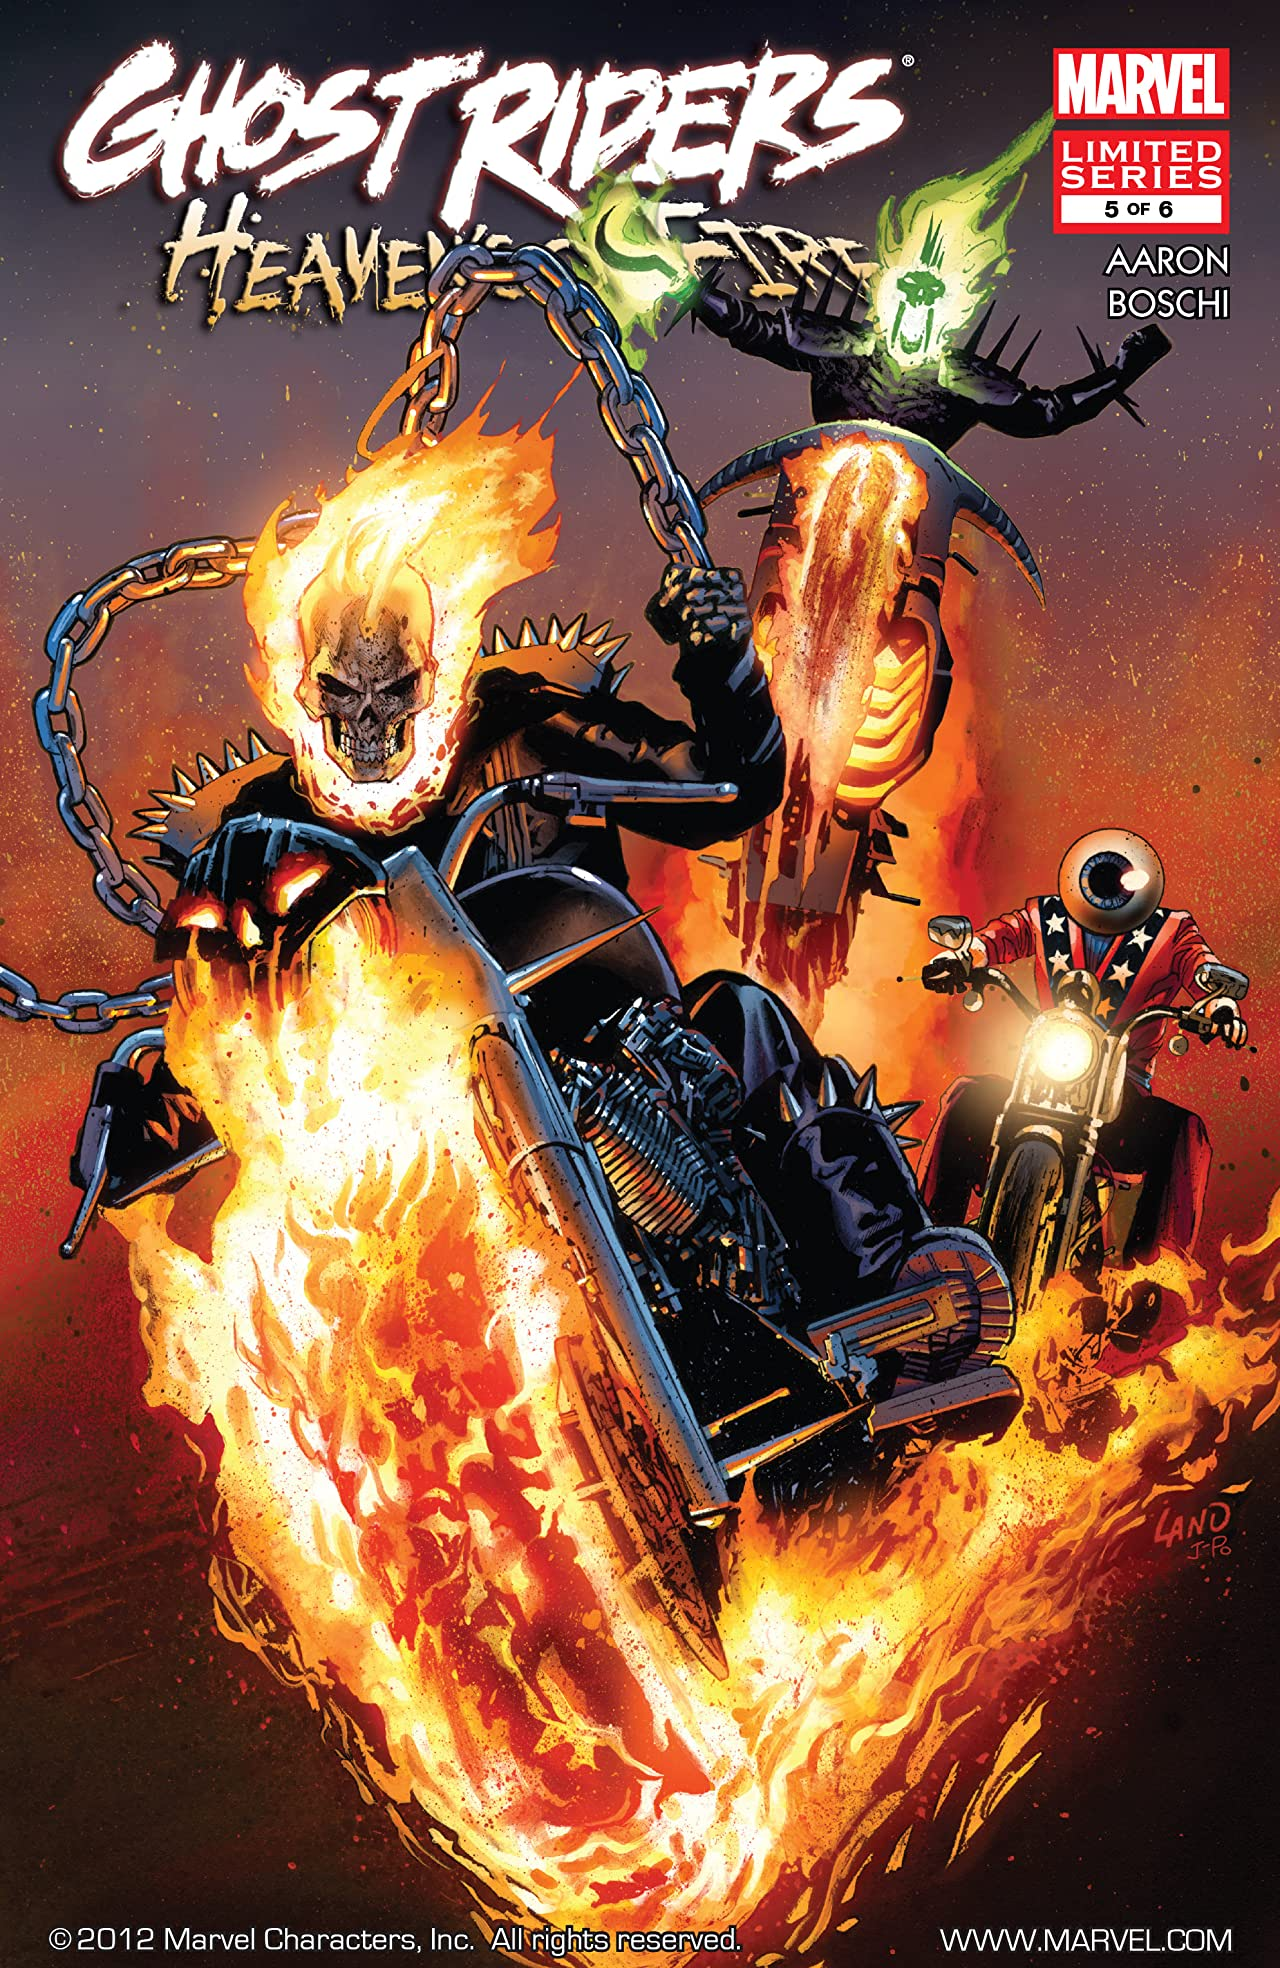 Ghost Riders: Heaven's on Fire (2009) #5 (of 6)